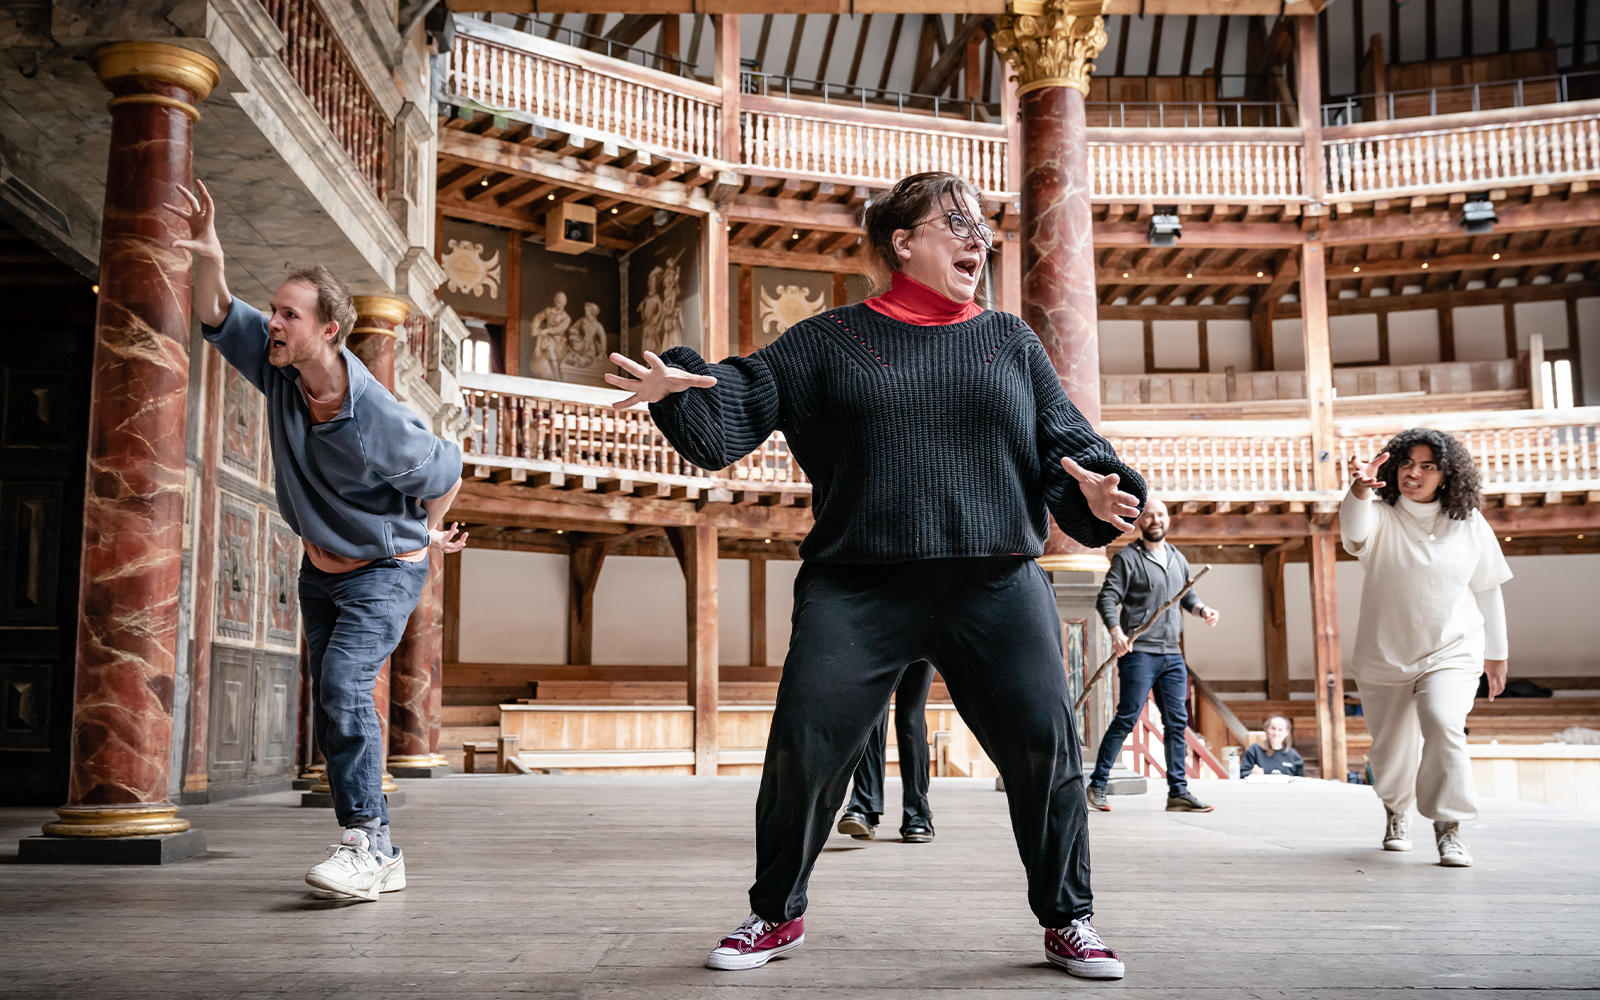 On the Globe Theatre stage, a group of actors are in the middle of a scene, gesturing and mid-movement